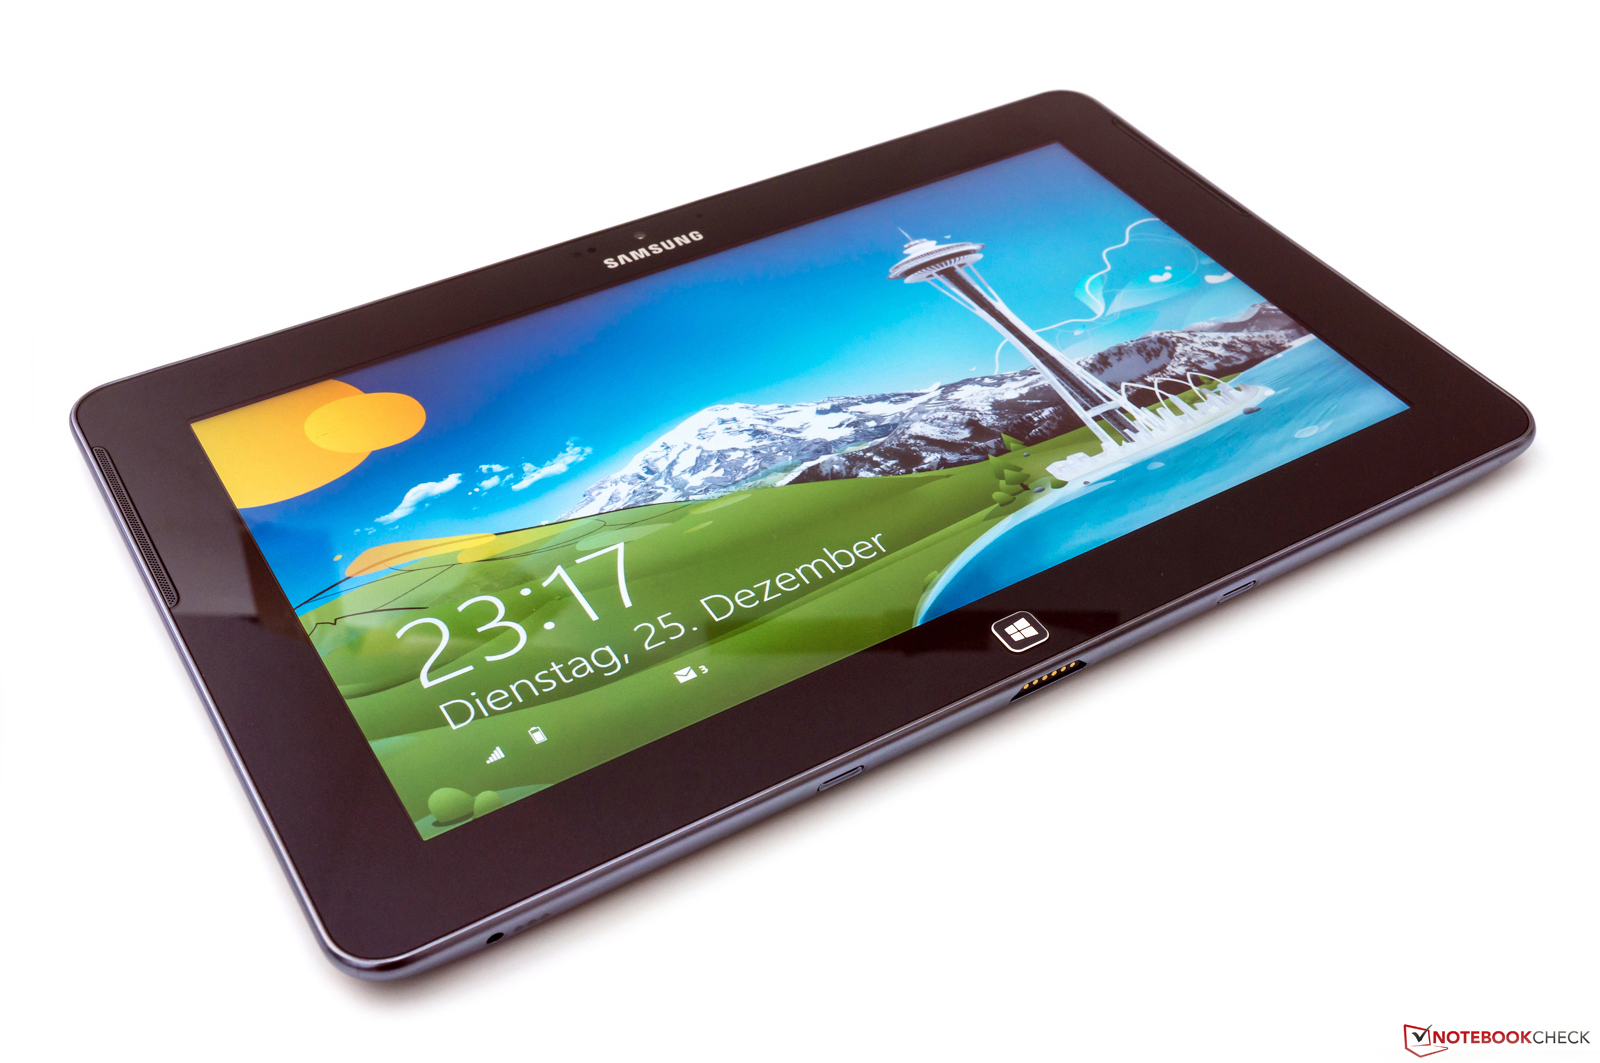 review samsung ativ tab gt p8510 tablet notebookcheck. Black Bedroom Furniture Sets. Home Design Ideas